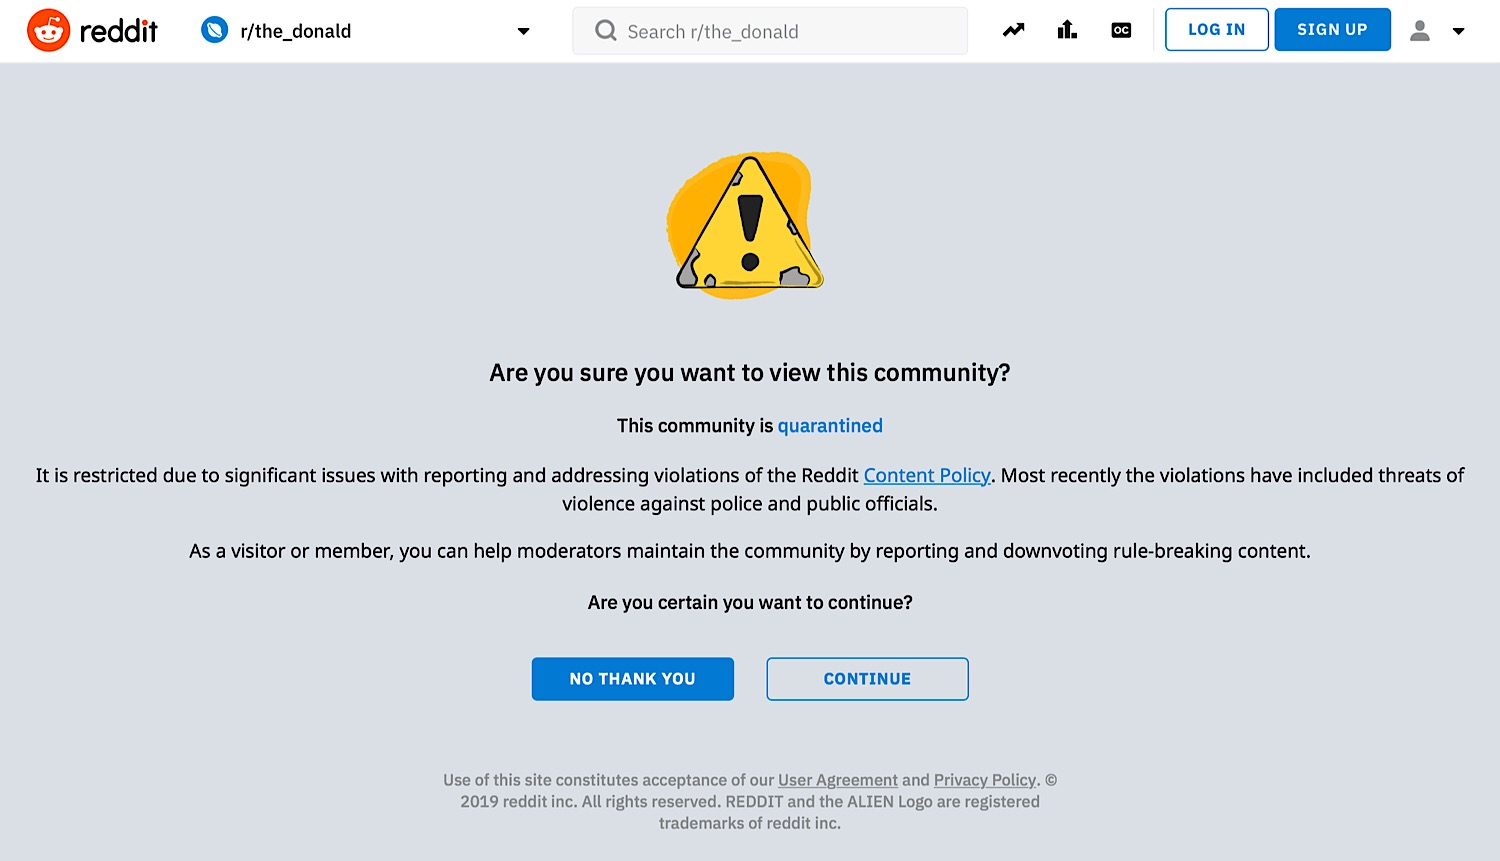 The warning message that appears when users attempt to access The Donald.